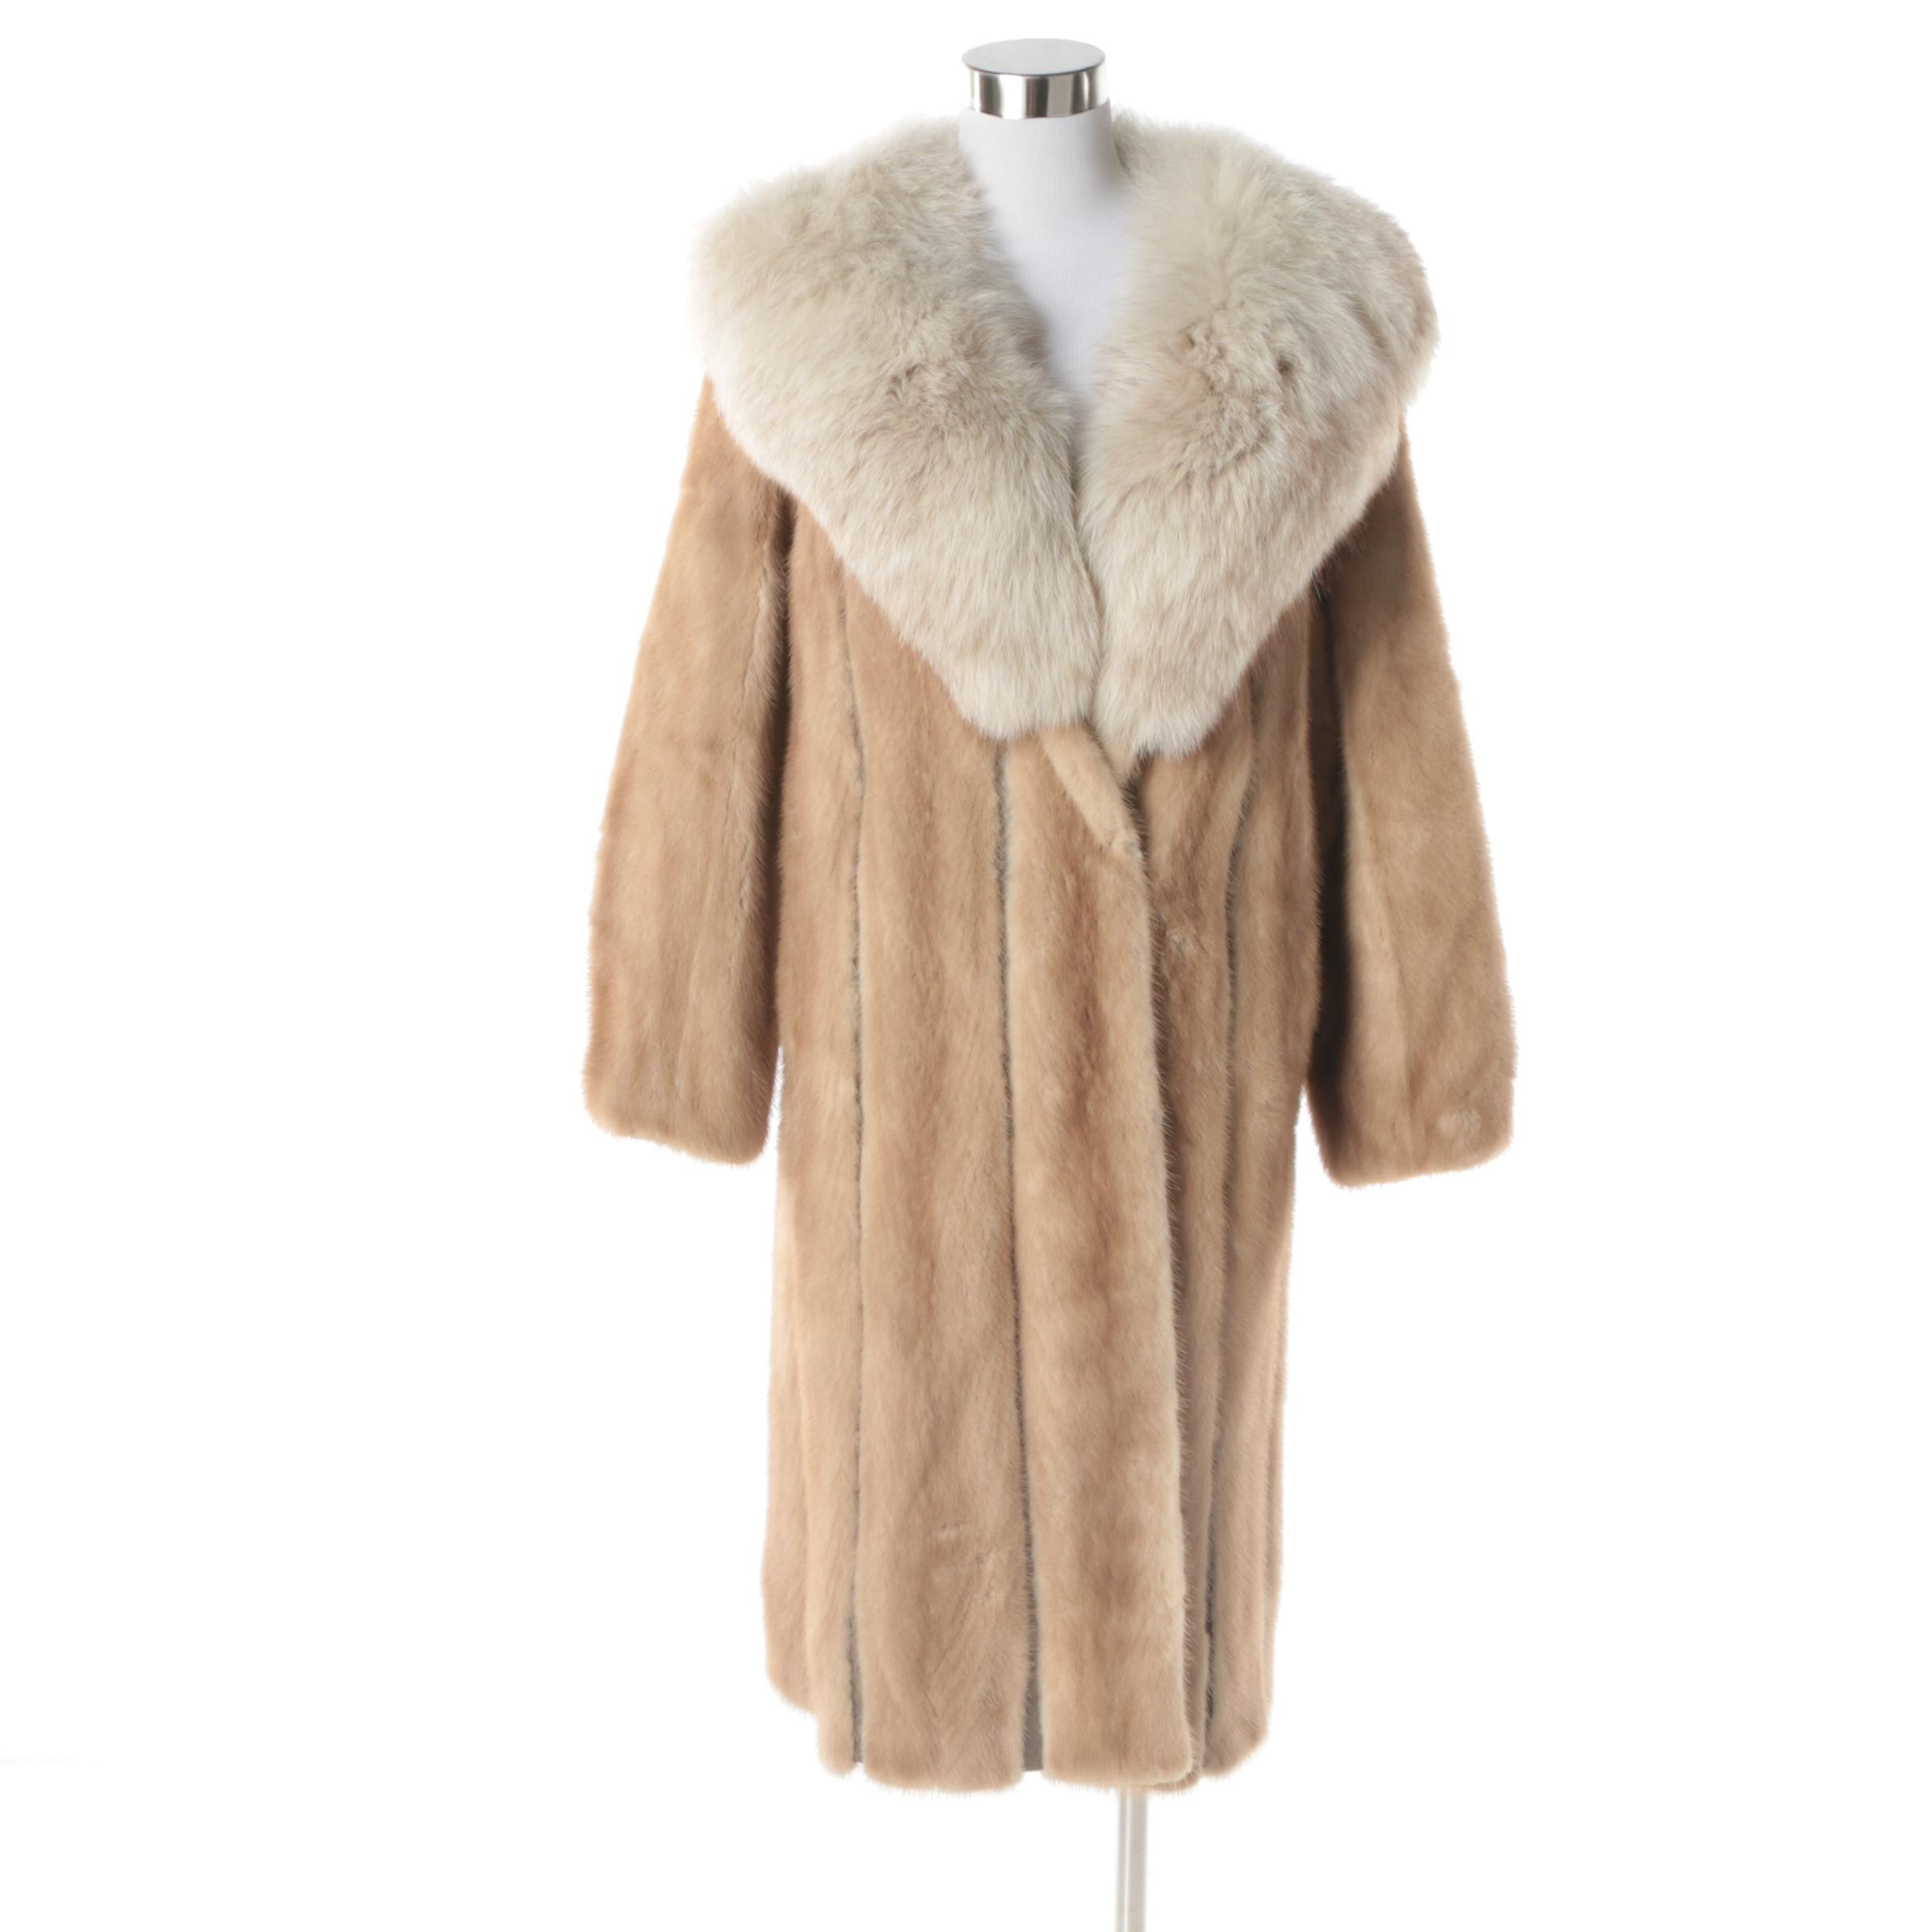 1970s Vintage Oleg Cassini Mink Fur and Leather Coat with Fox Fur Collar